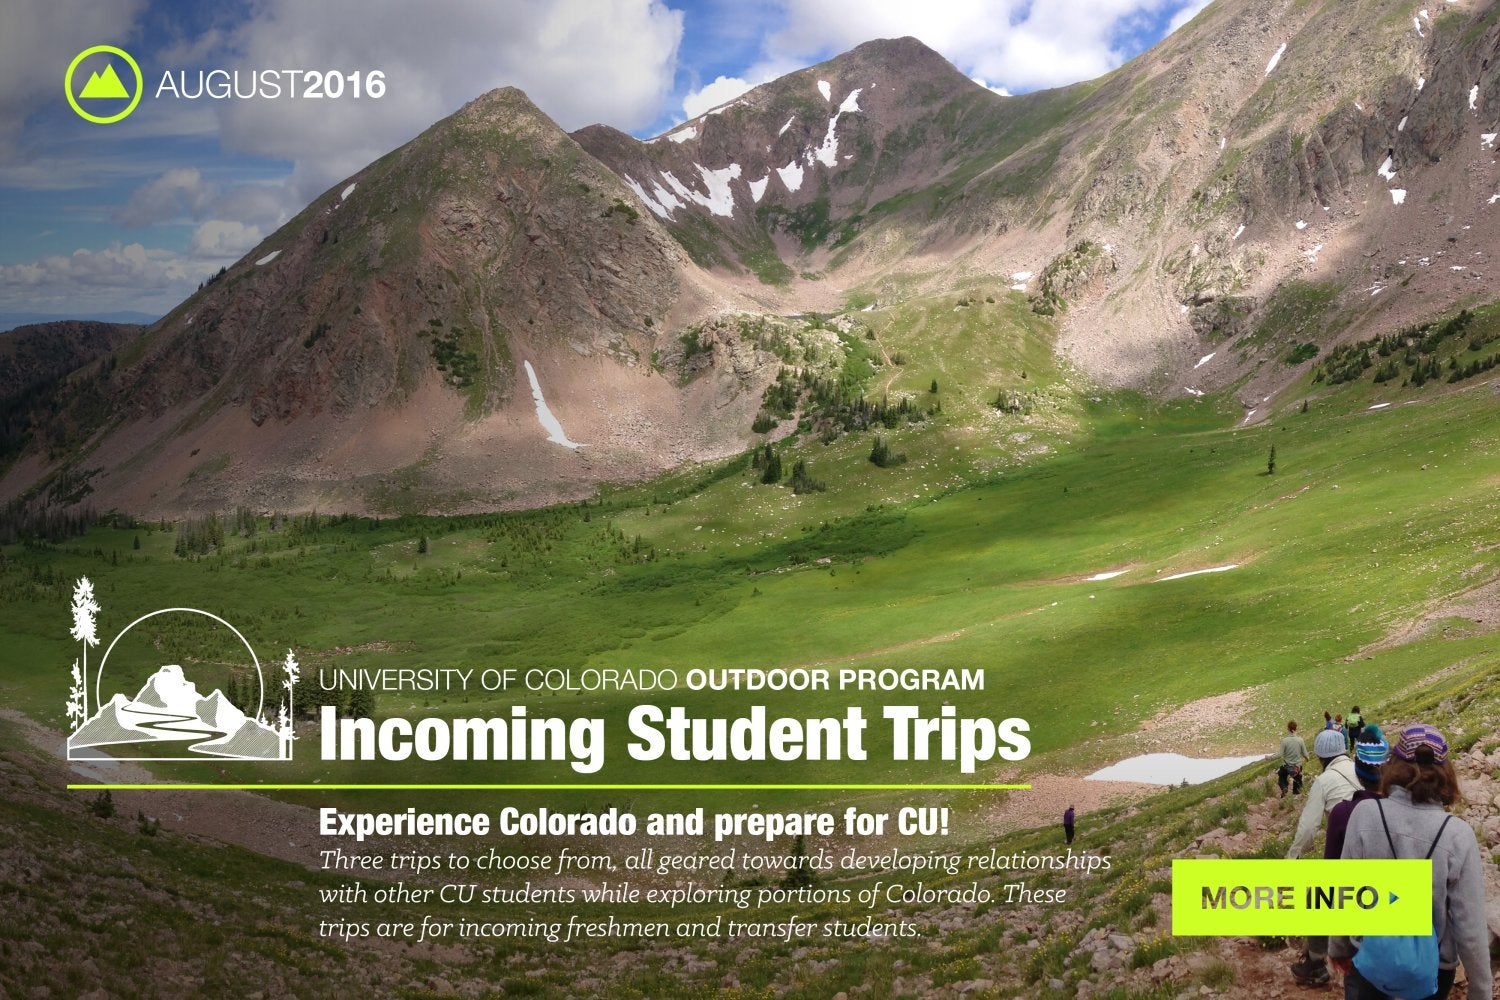 Incoming student trips